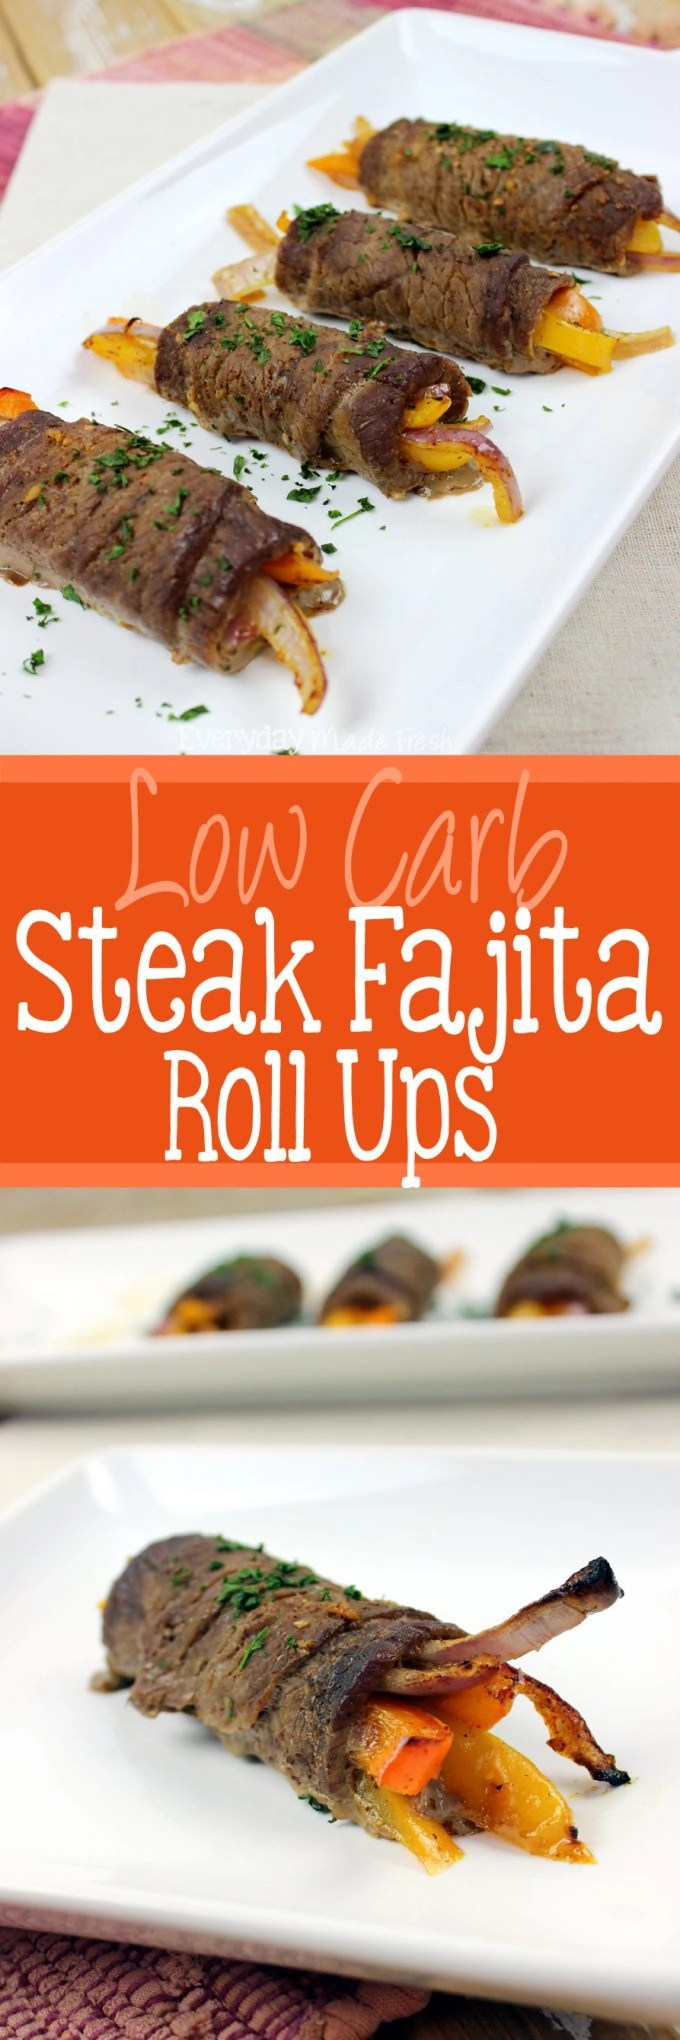 These Low Carb Steak Fajita Roll Ups are guilt free and loaded with flavors that won't leave you missing the tortilla! | EverydayMadeFresh.com